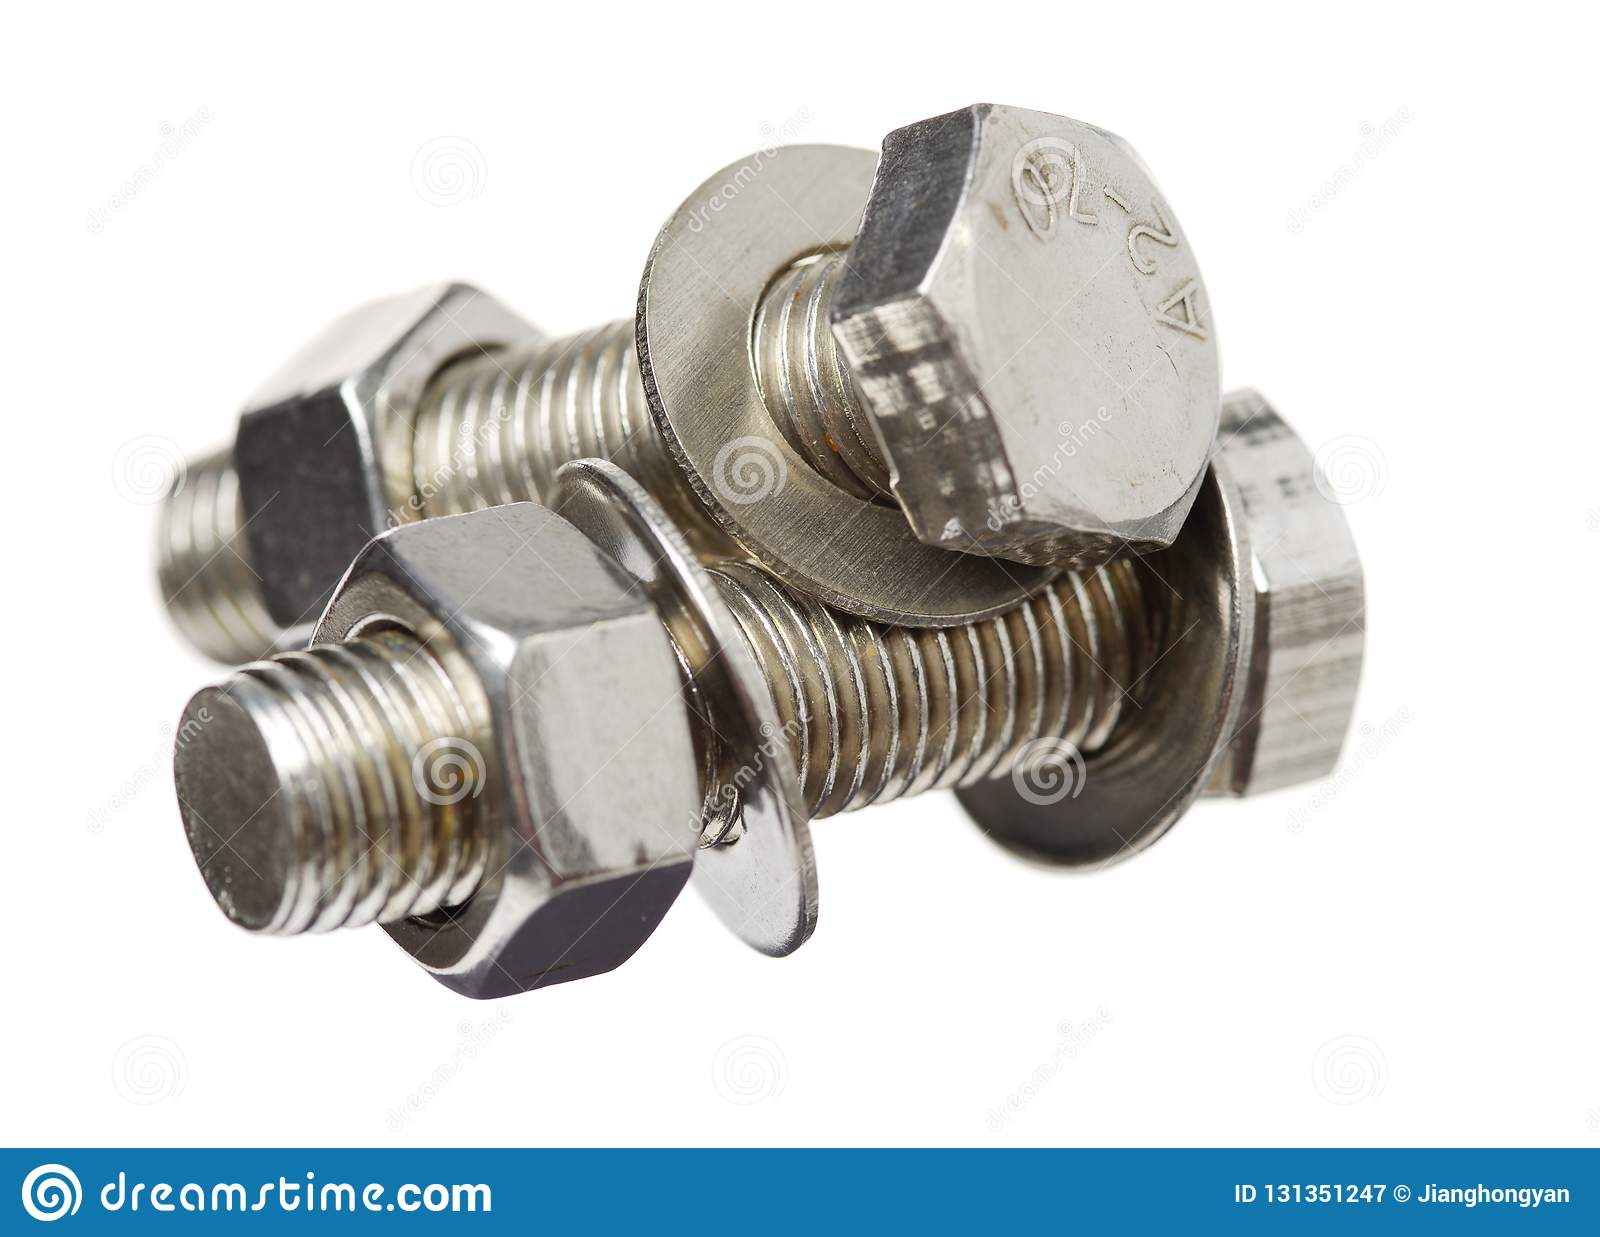 Screw, Bolt, Stud, Nut, Washer And Spring Washer Stock Image